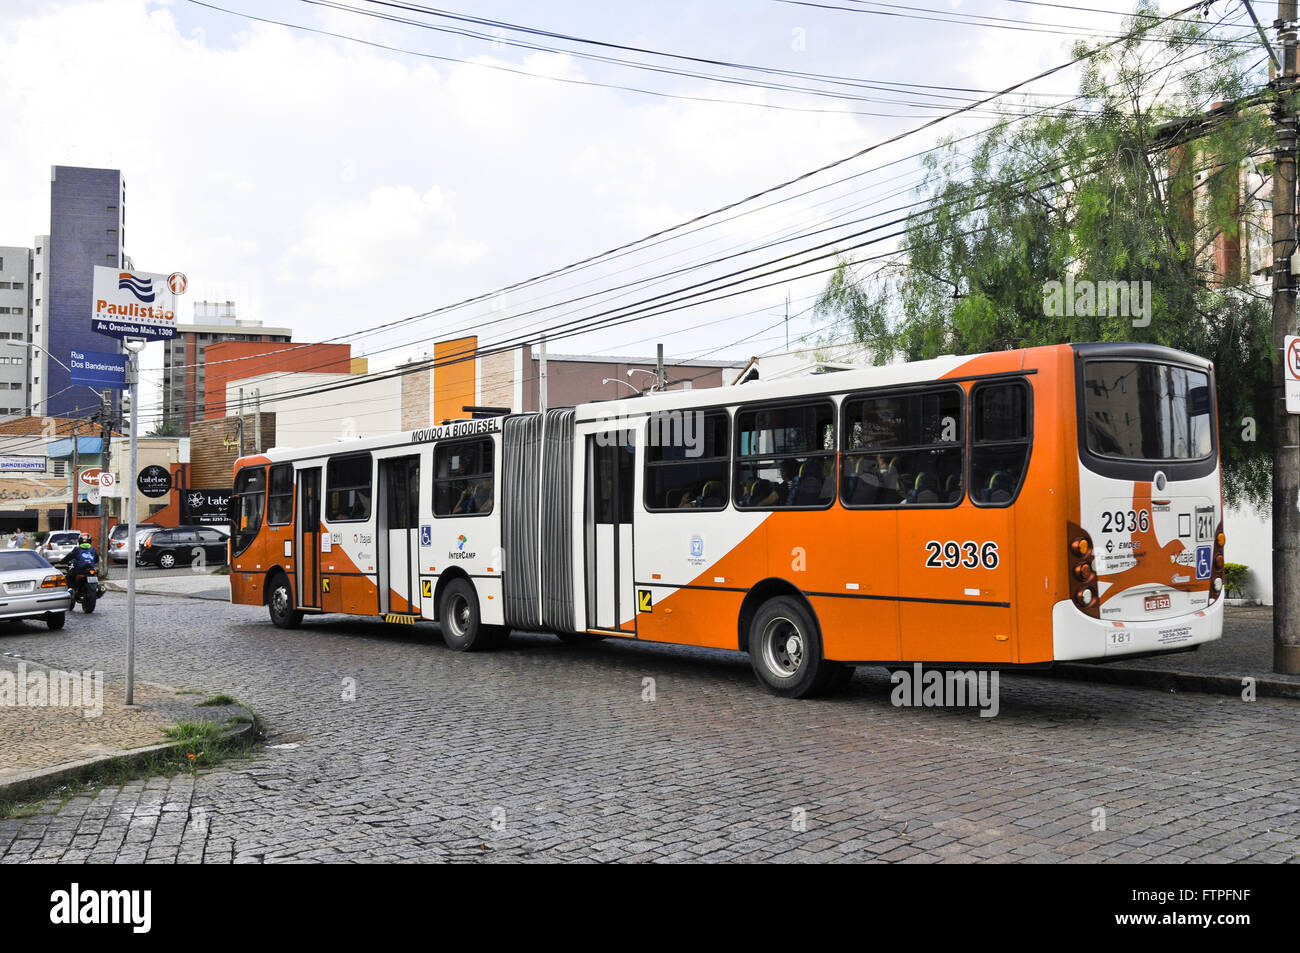 bus traveling on the street Neighbourhood Cambui - Stock Image